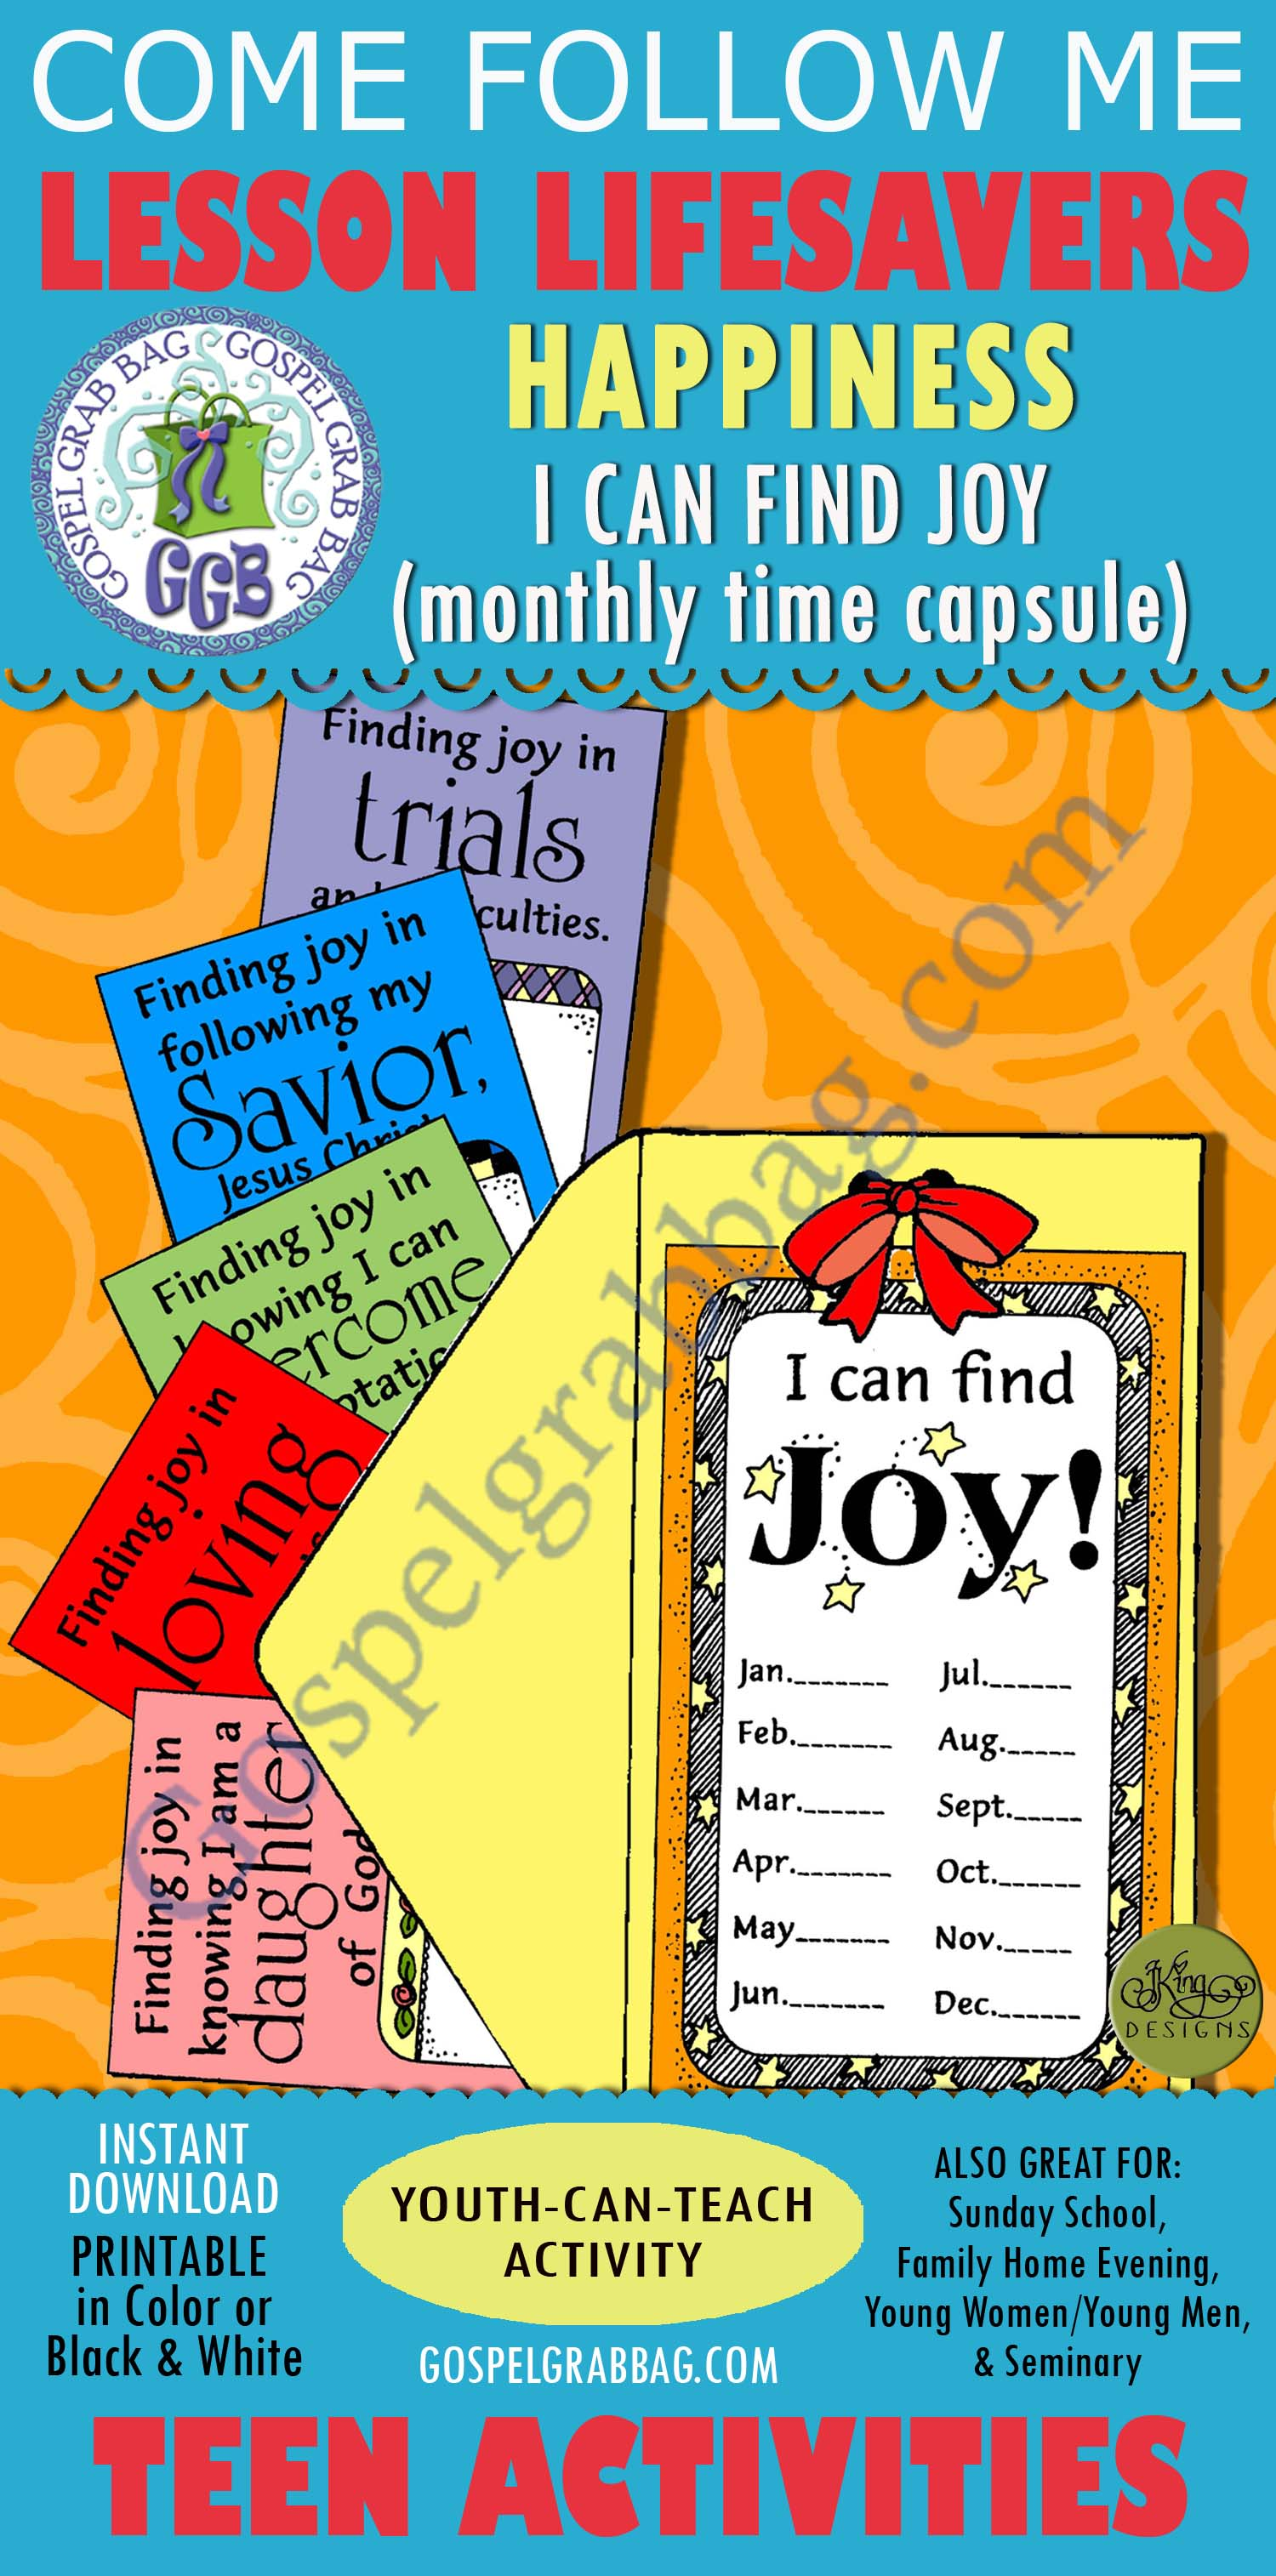 Attitude - Happiness - Trials: LESSON LIFESAVER Activity: Finding Joy -  Monthly Time Capsule, Come Follow Me handout - Gospel Grab Bag